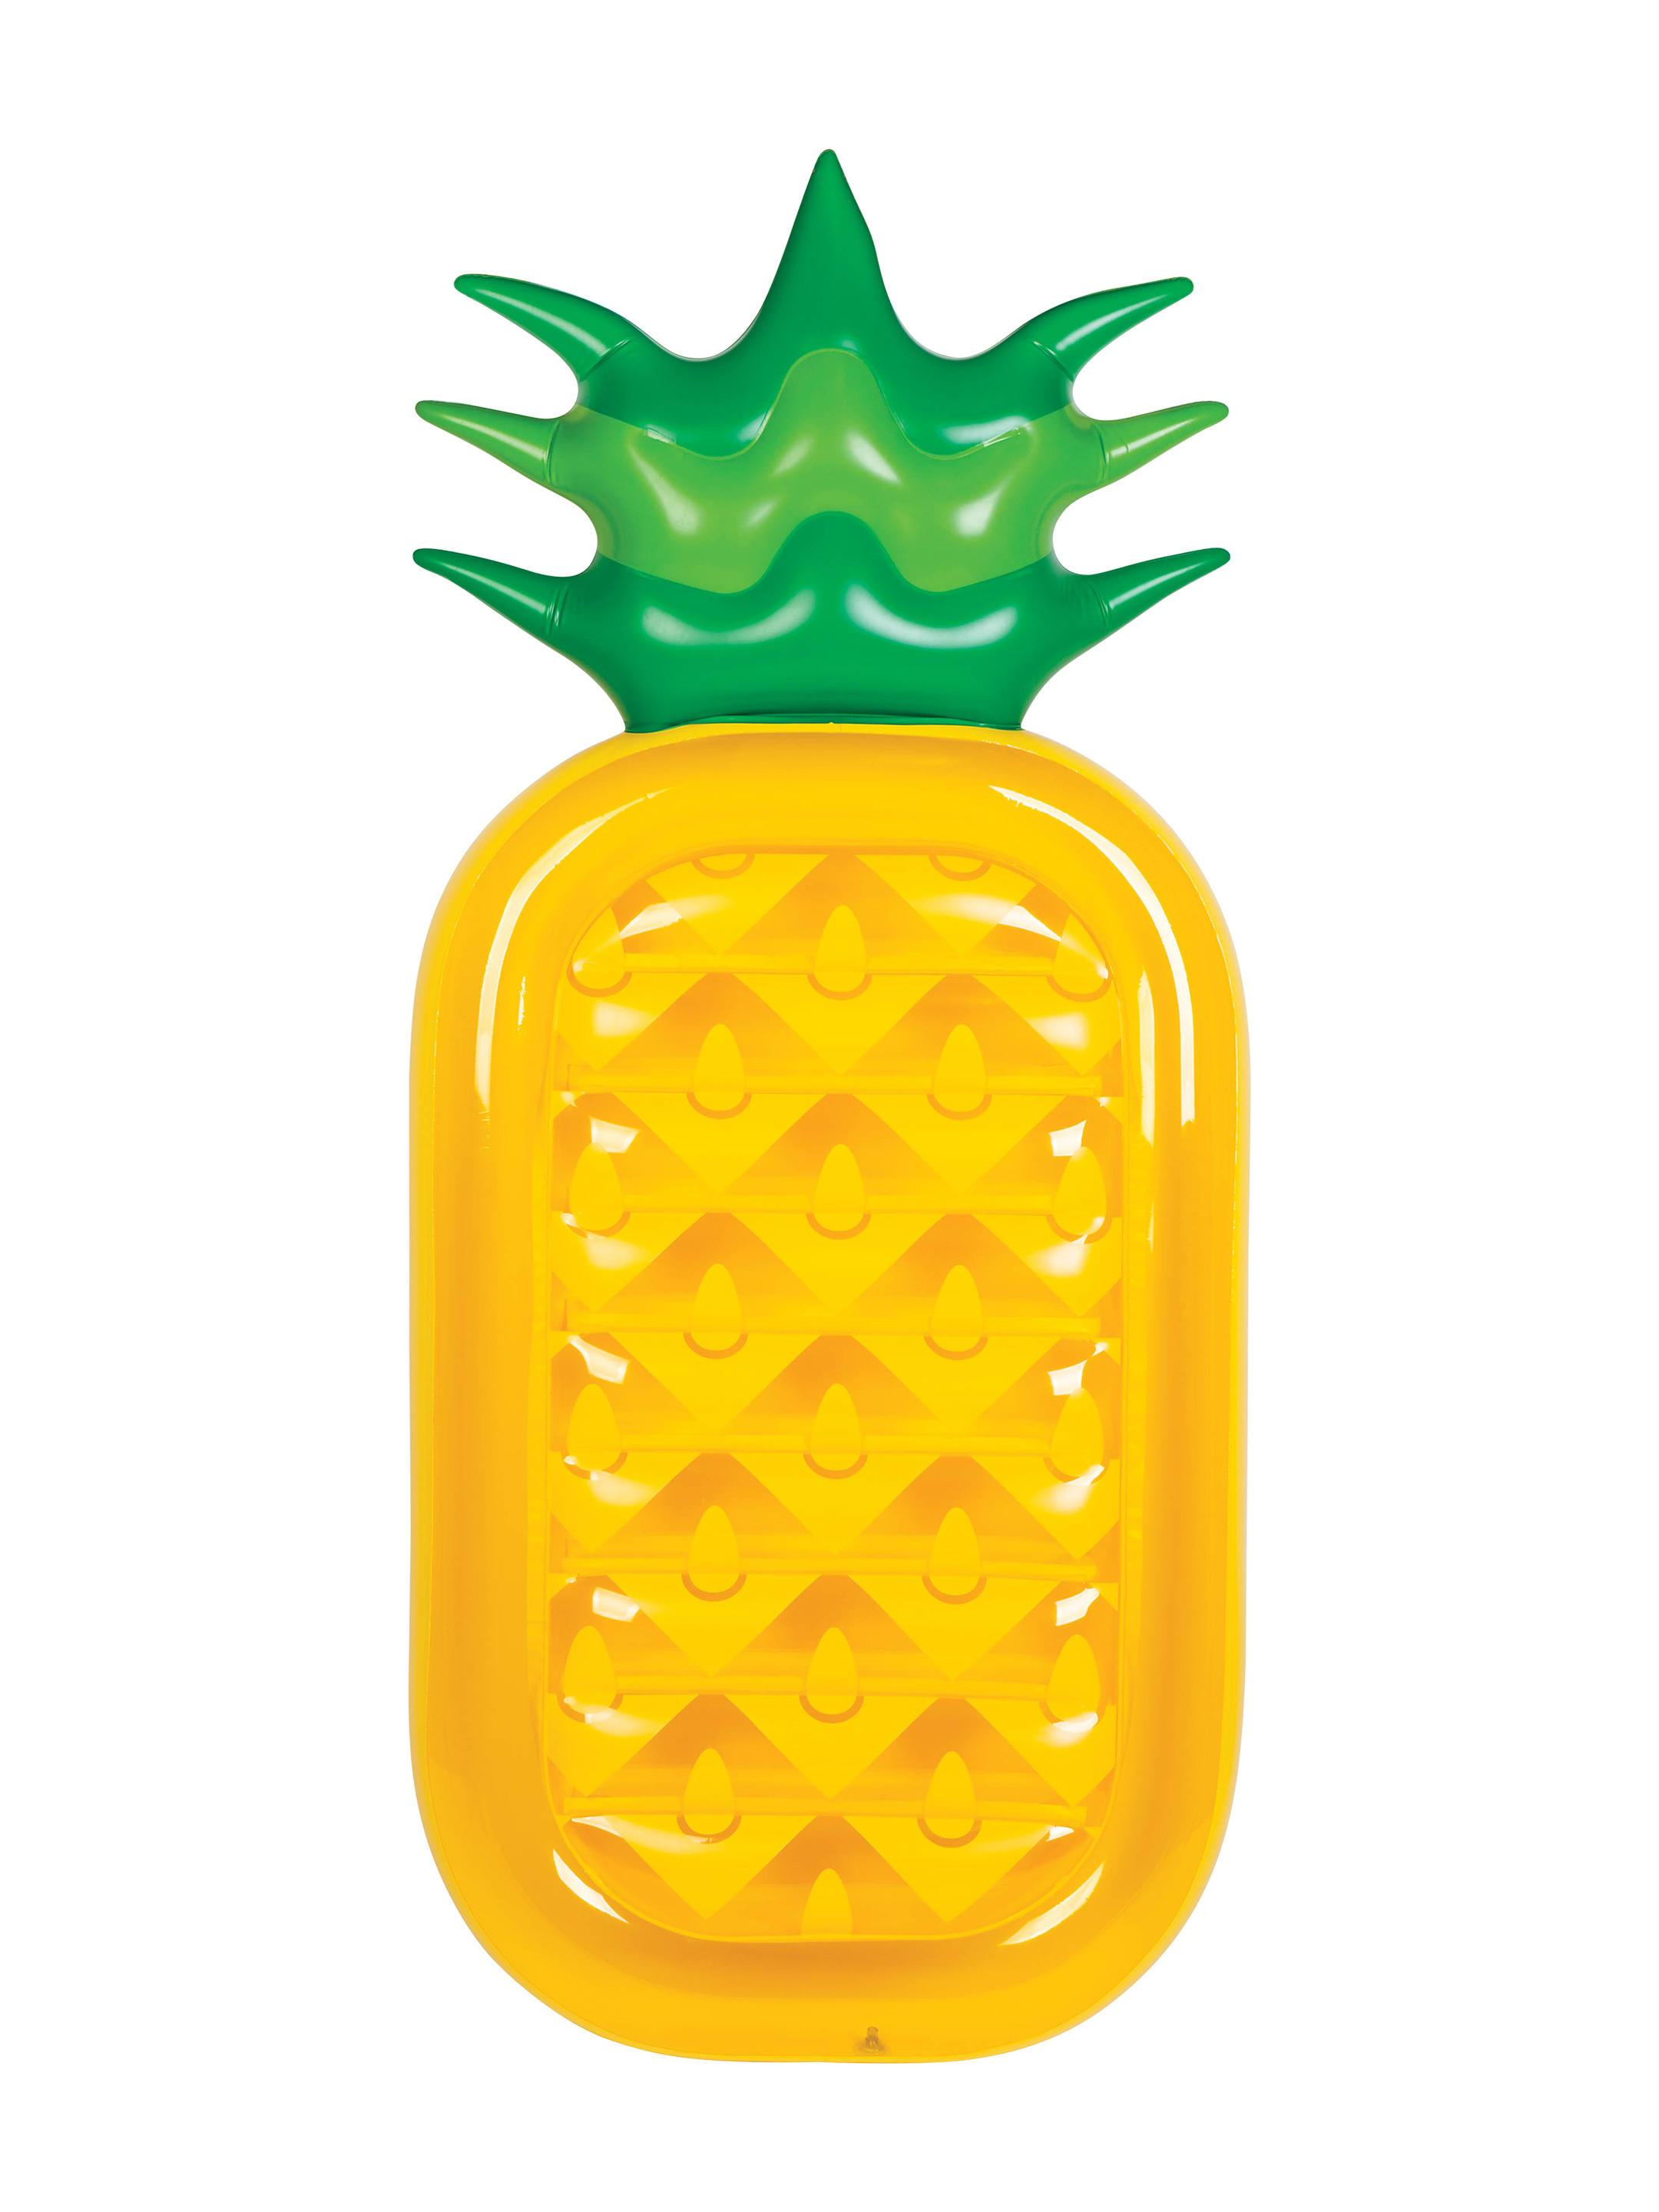 Sunnylife Pineapple Luxe Floaty_Gilt.com.jpg